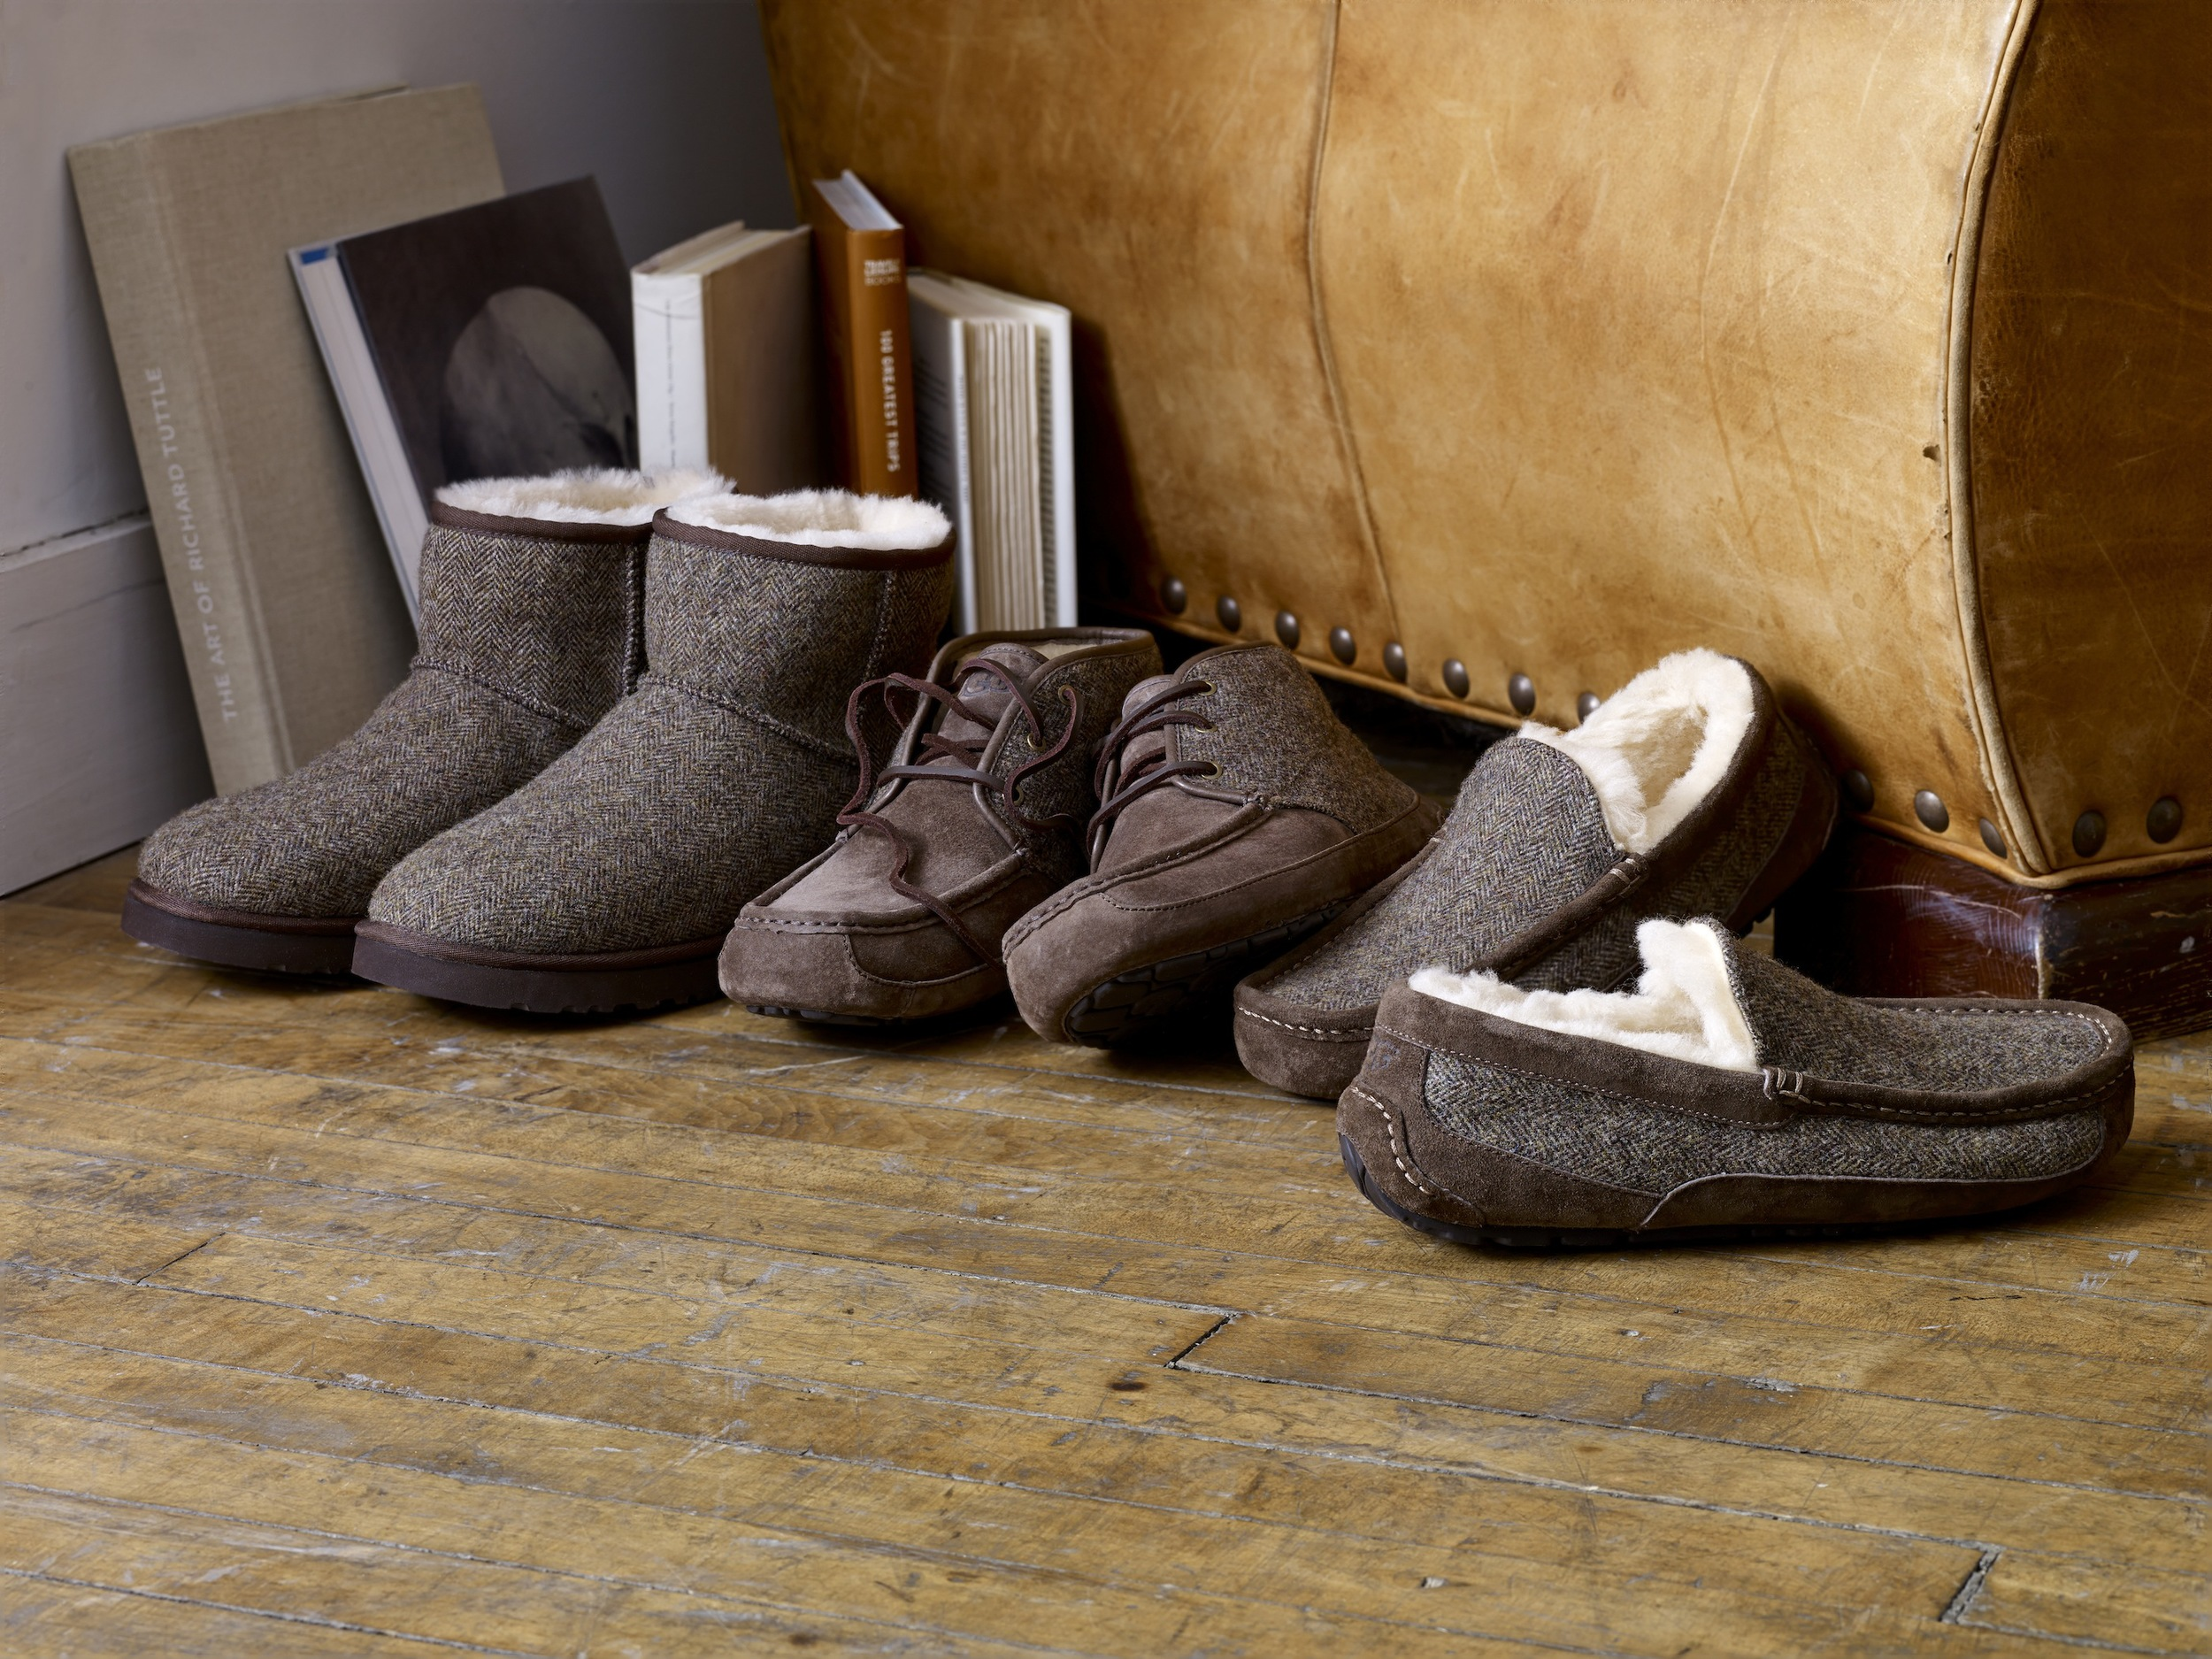 UGG_Classic_Mini_Tweed_Stout_$2190_Lyle_Tweed_Stout_$1800_Ascot_Tweed_Stout_$1590.jpg